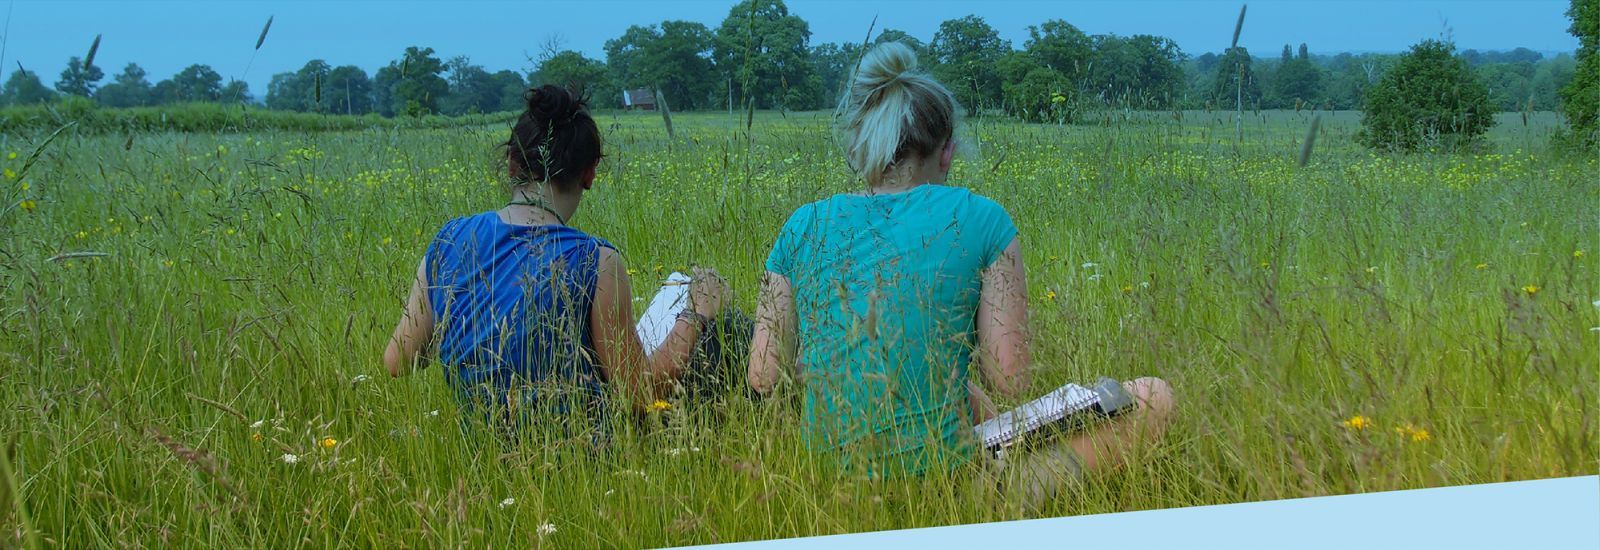 Two students sitting working in a meadow with their backs to the camera